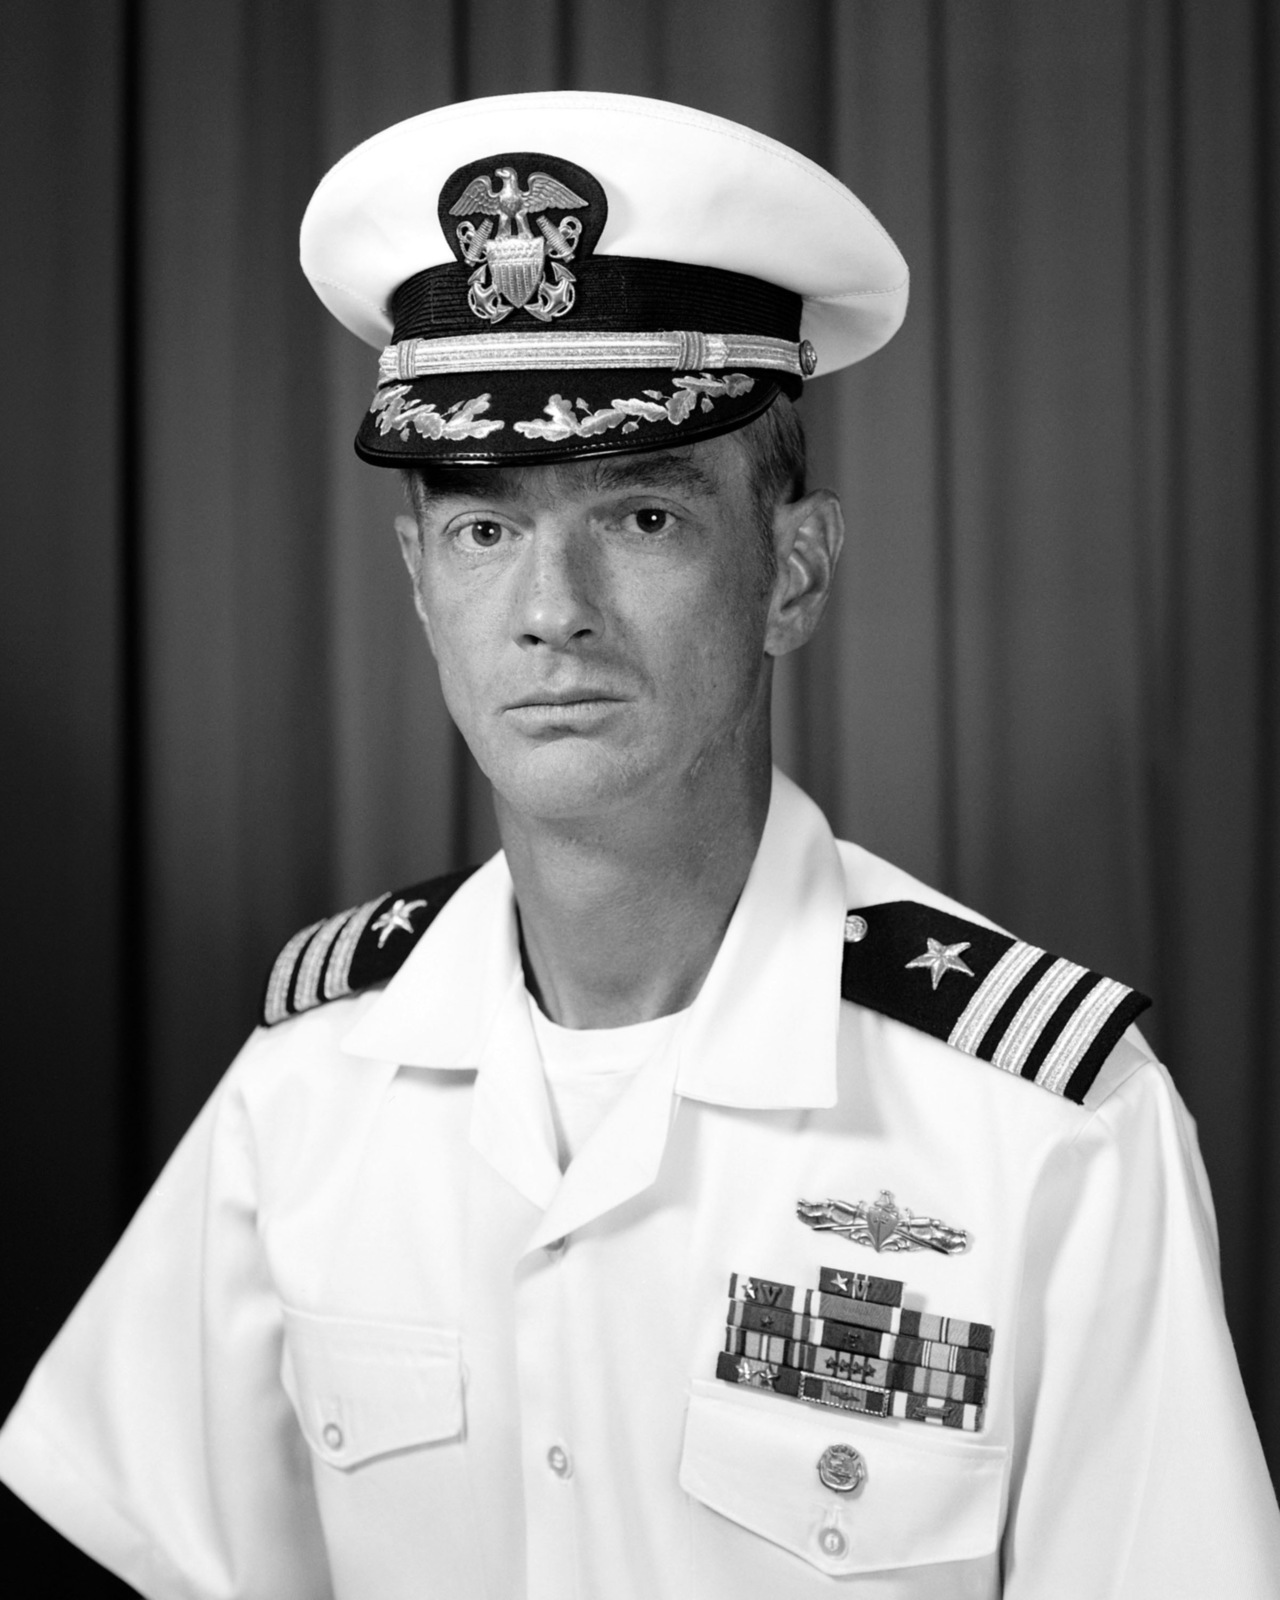 Commander James B. Cook, USN (covered)